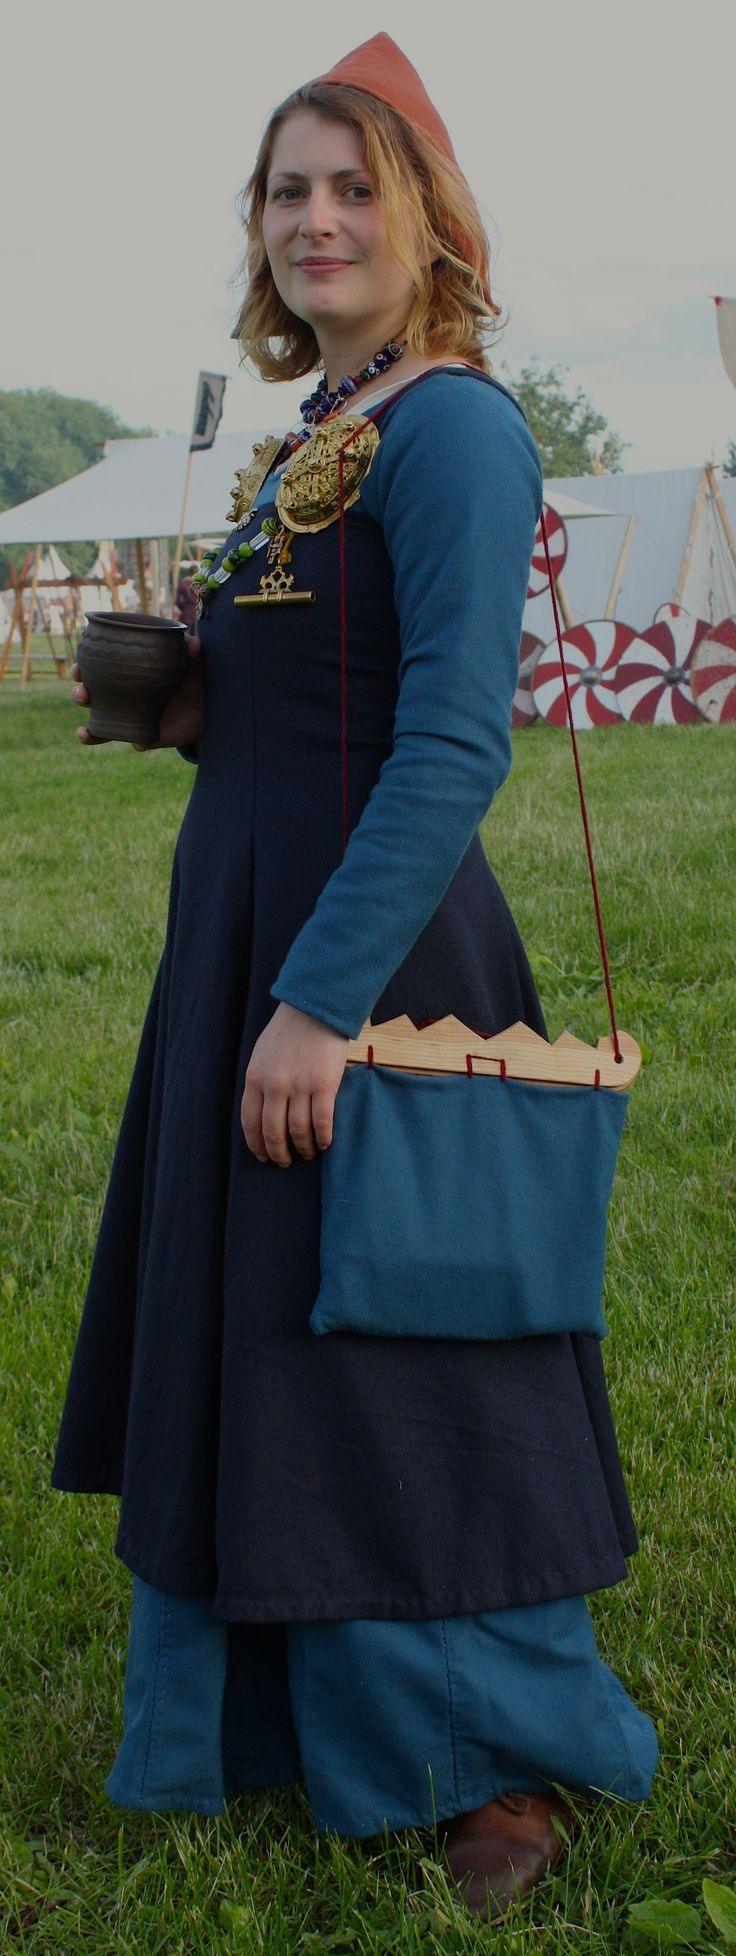 Blue apron dress - Hedeby Dress In Woad Dyed Twill Is Finished Handsewn With Waxed Linen Thread Here Seen Together With A York Cap In Wool An Apron Dress And A Bag Based On